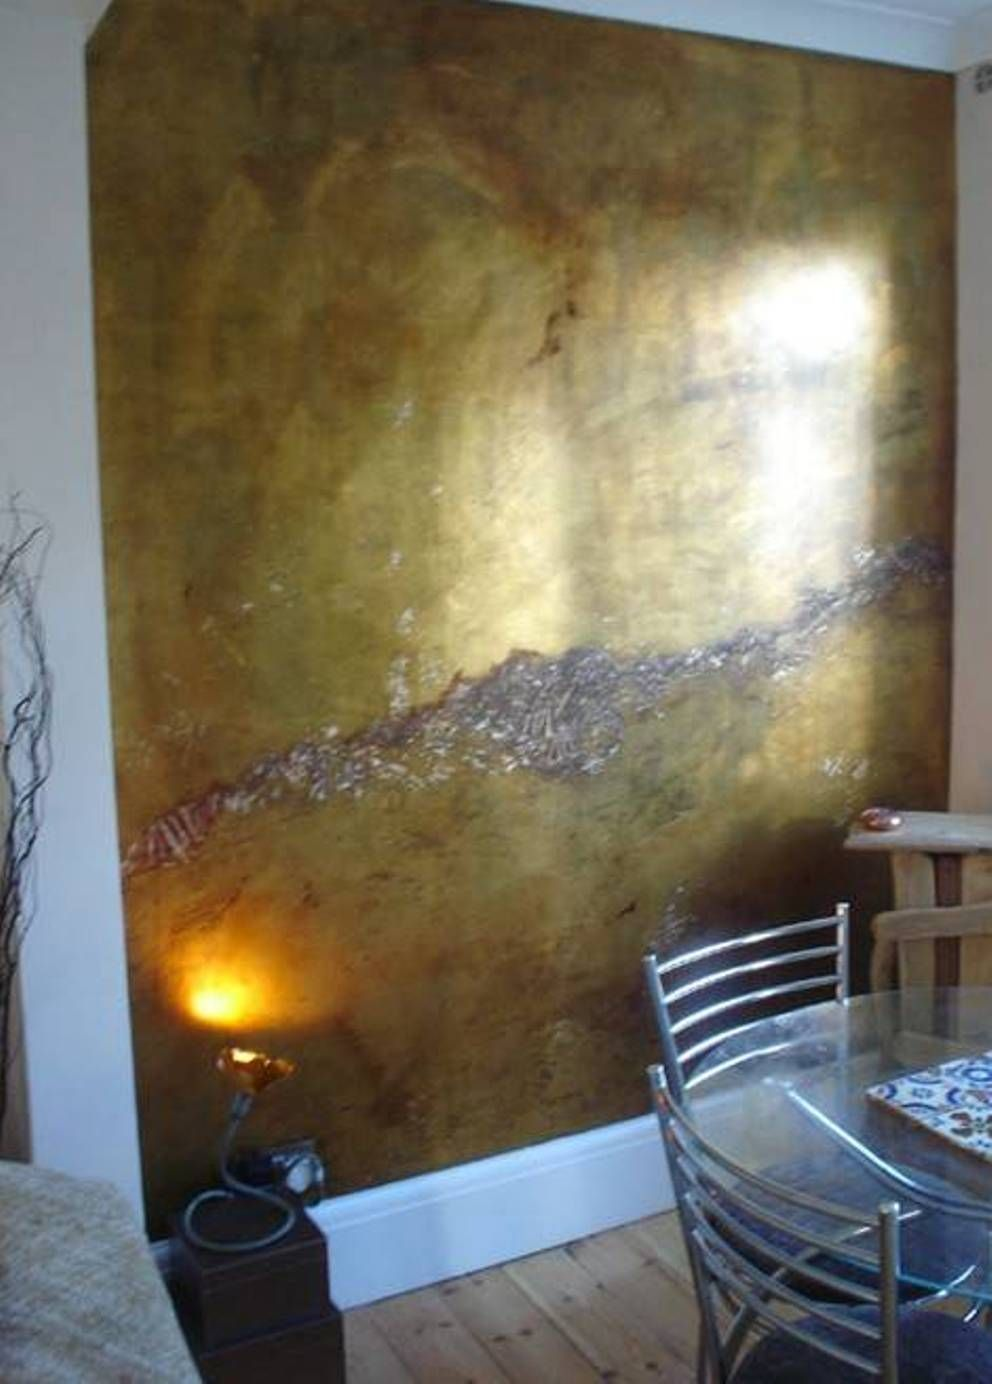 Home Design And Decor Interior Metallic Paint Wall Dining Room With Gold Metallic Paint Wall And Hardwood Floor Metallic Paint Walls Gold Walls Decor